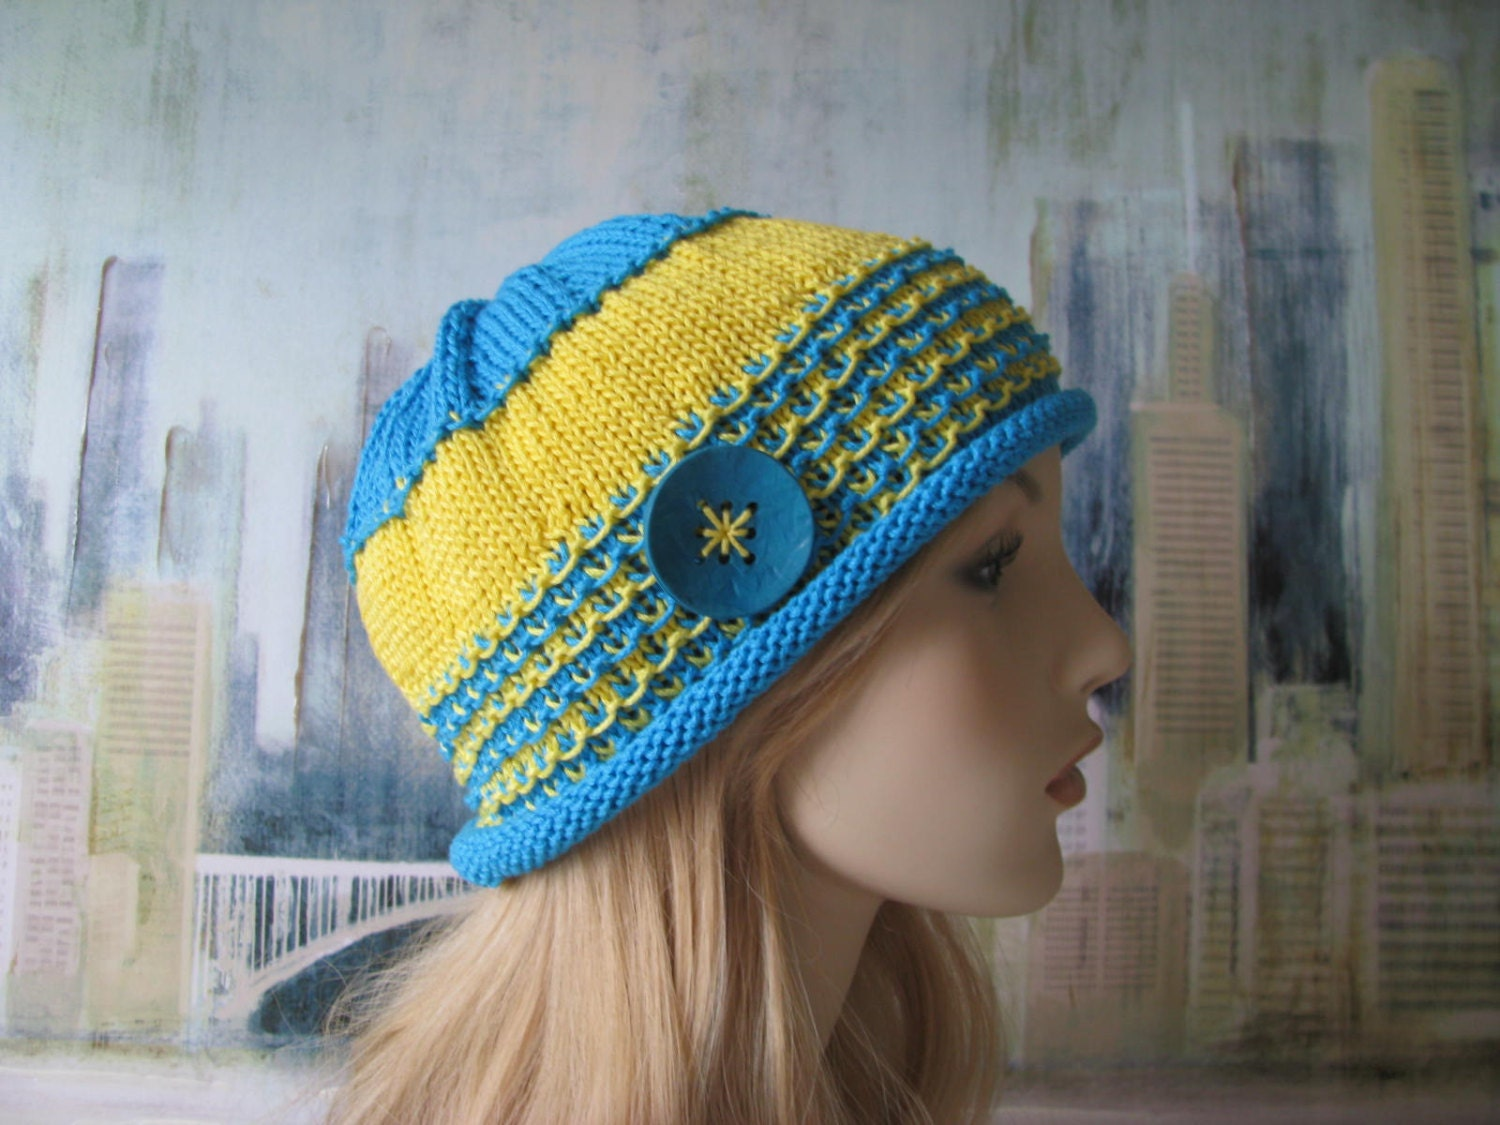 Knit Chemo Hat Patterns : Instant Download Knit Hat Chemo Hat Knitting pattern